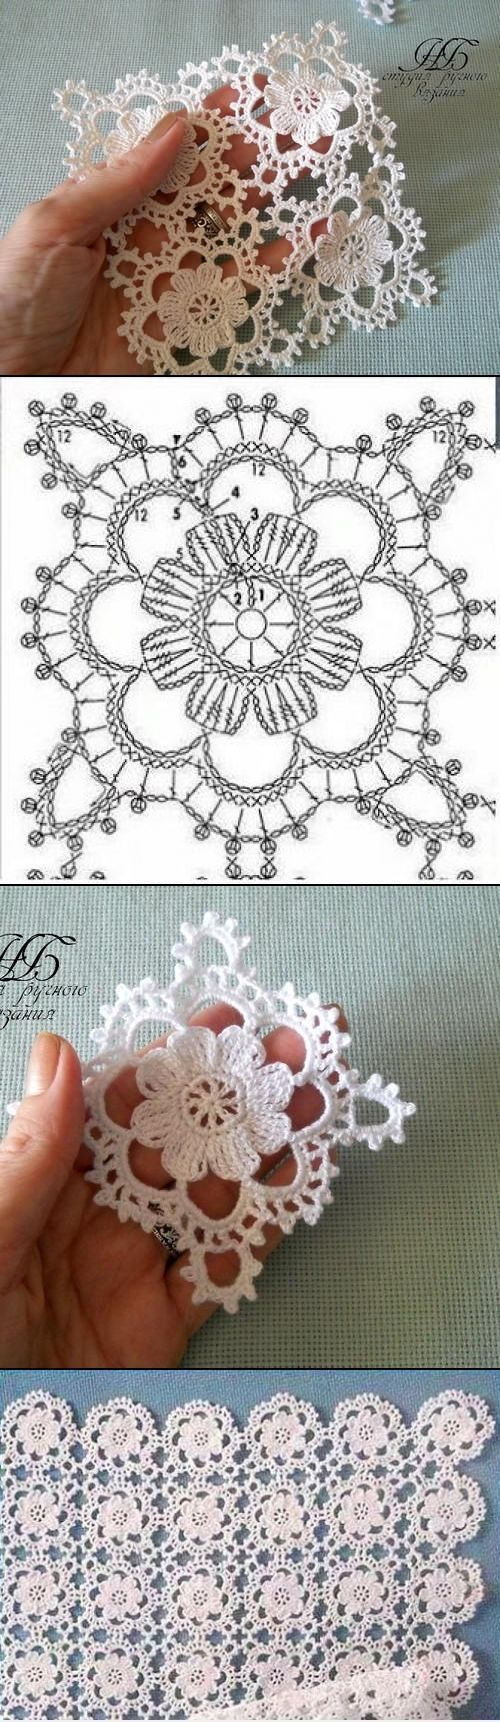 Simple Motif to Crochet with Flower ⋆ Crafts and DIYCrafts and DIY - Monika -